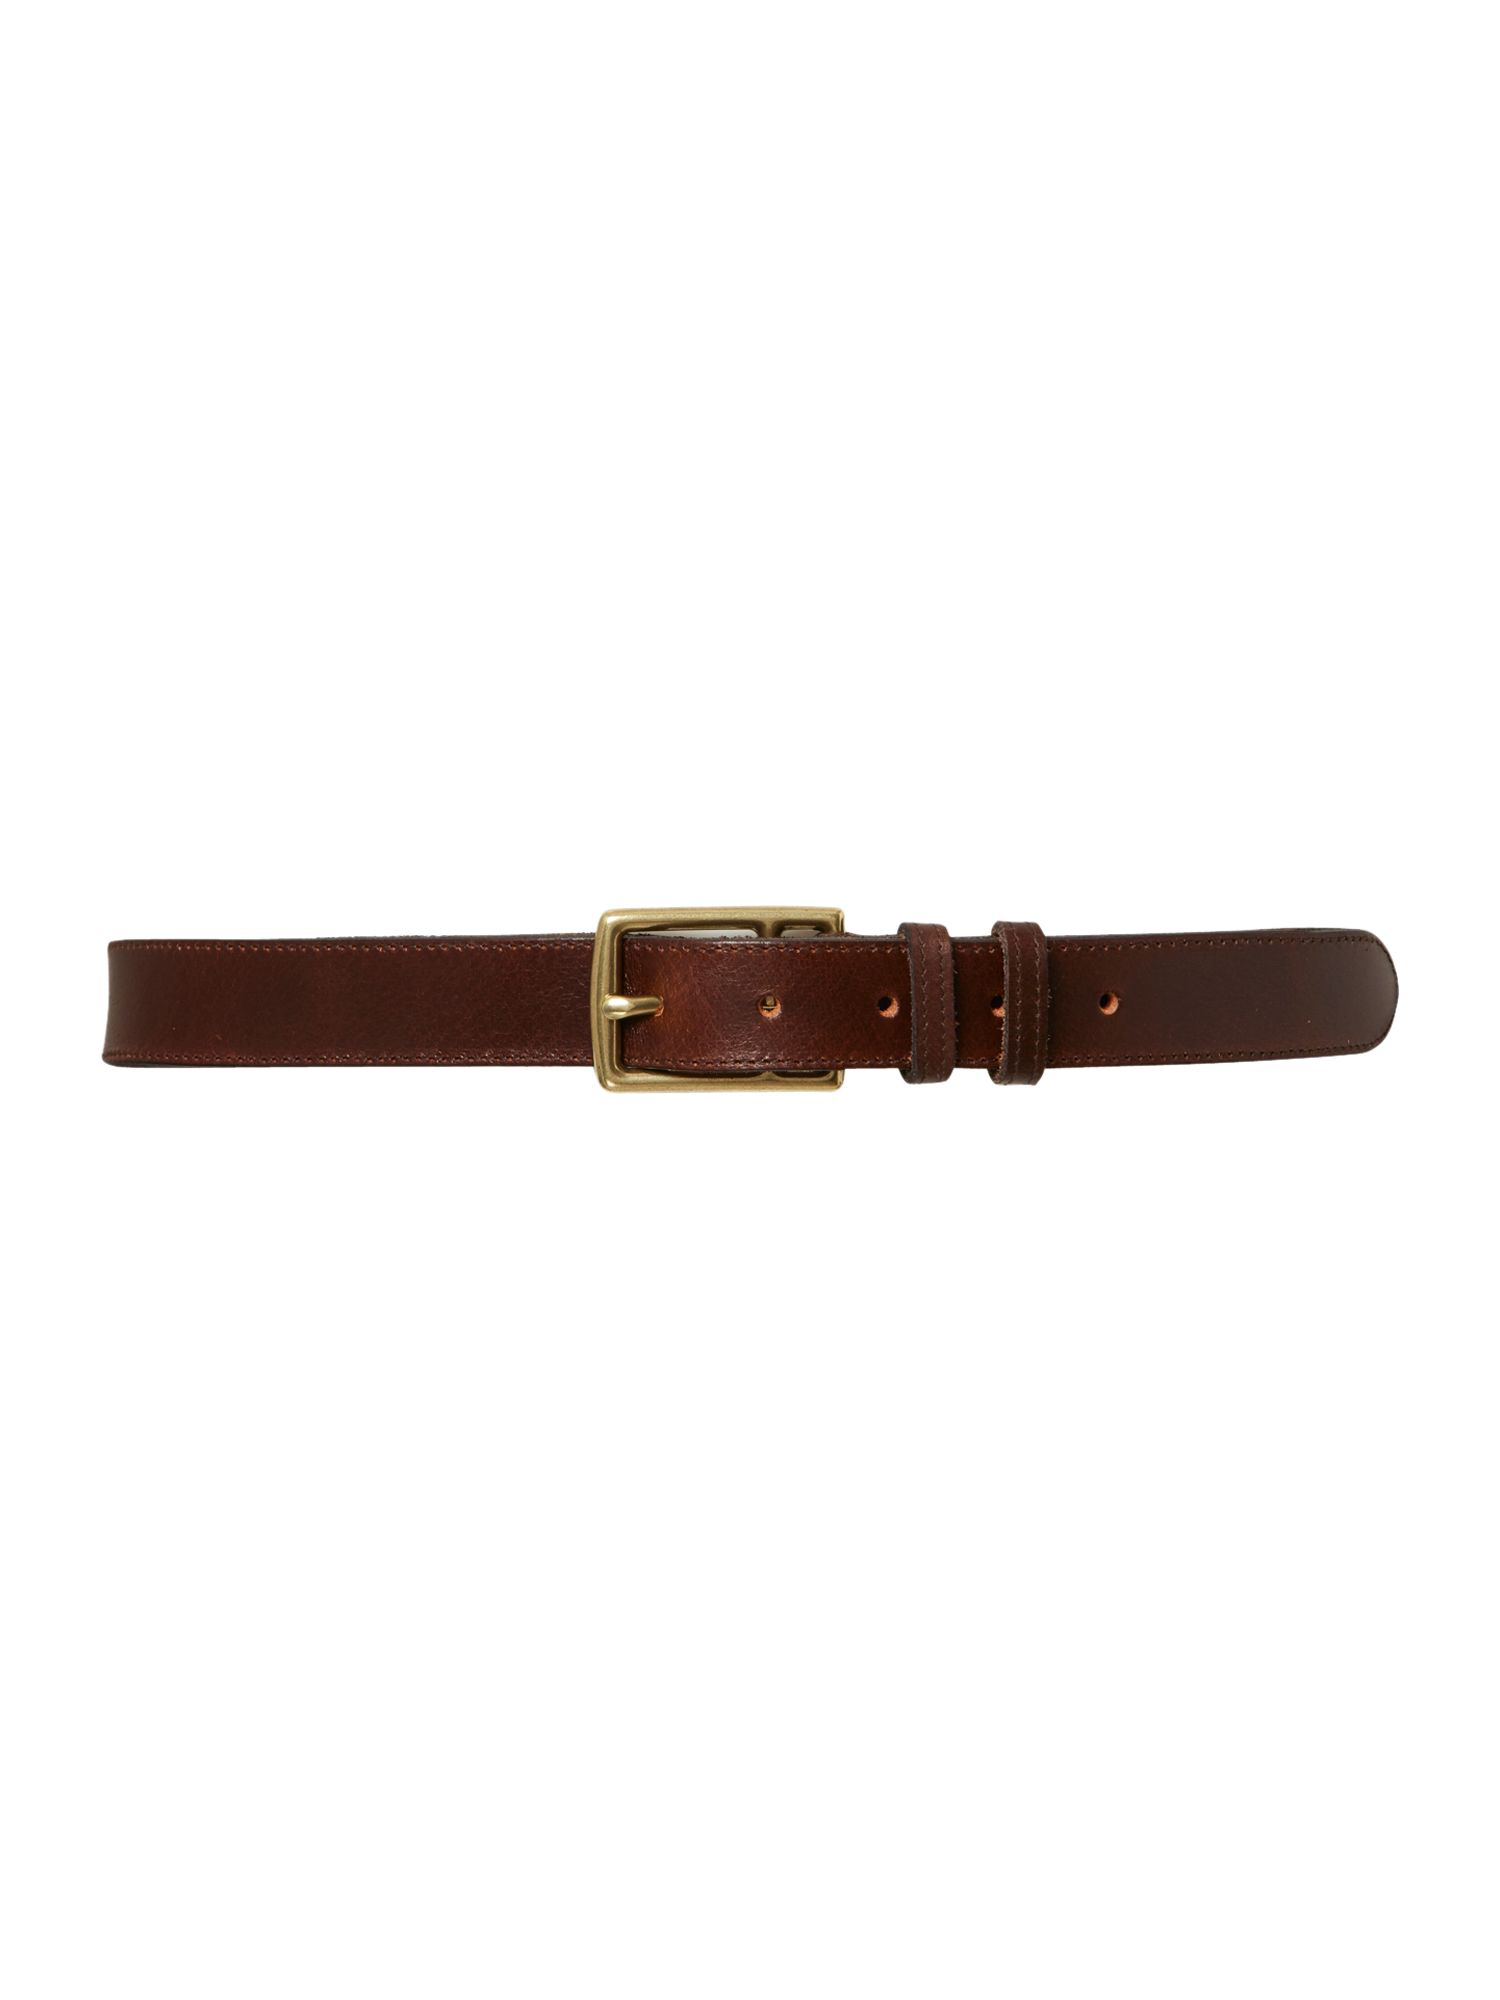 Stitch edge leather belt